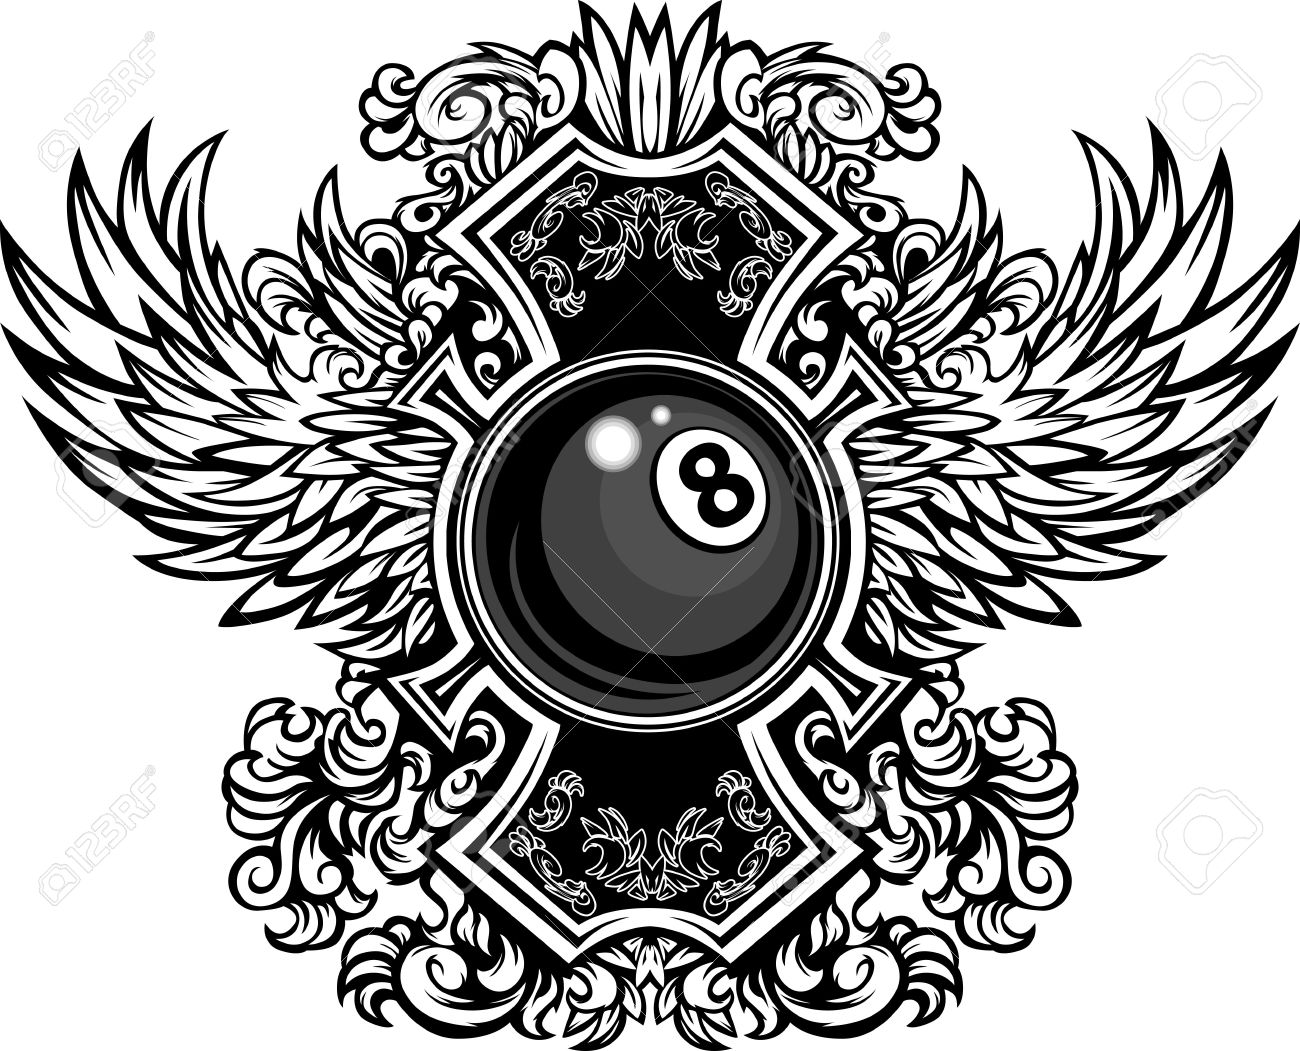 Billiards or Pool Eight Ball with Ornate Wing Borders Vector Graphic Stock Vector - 12805194